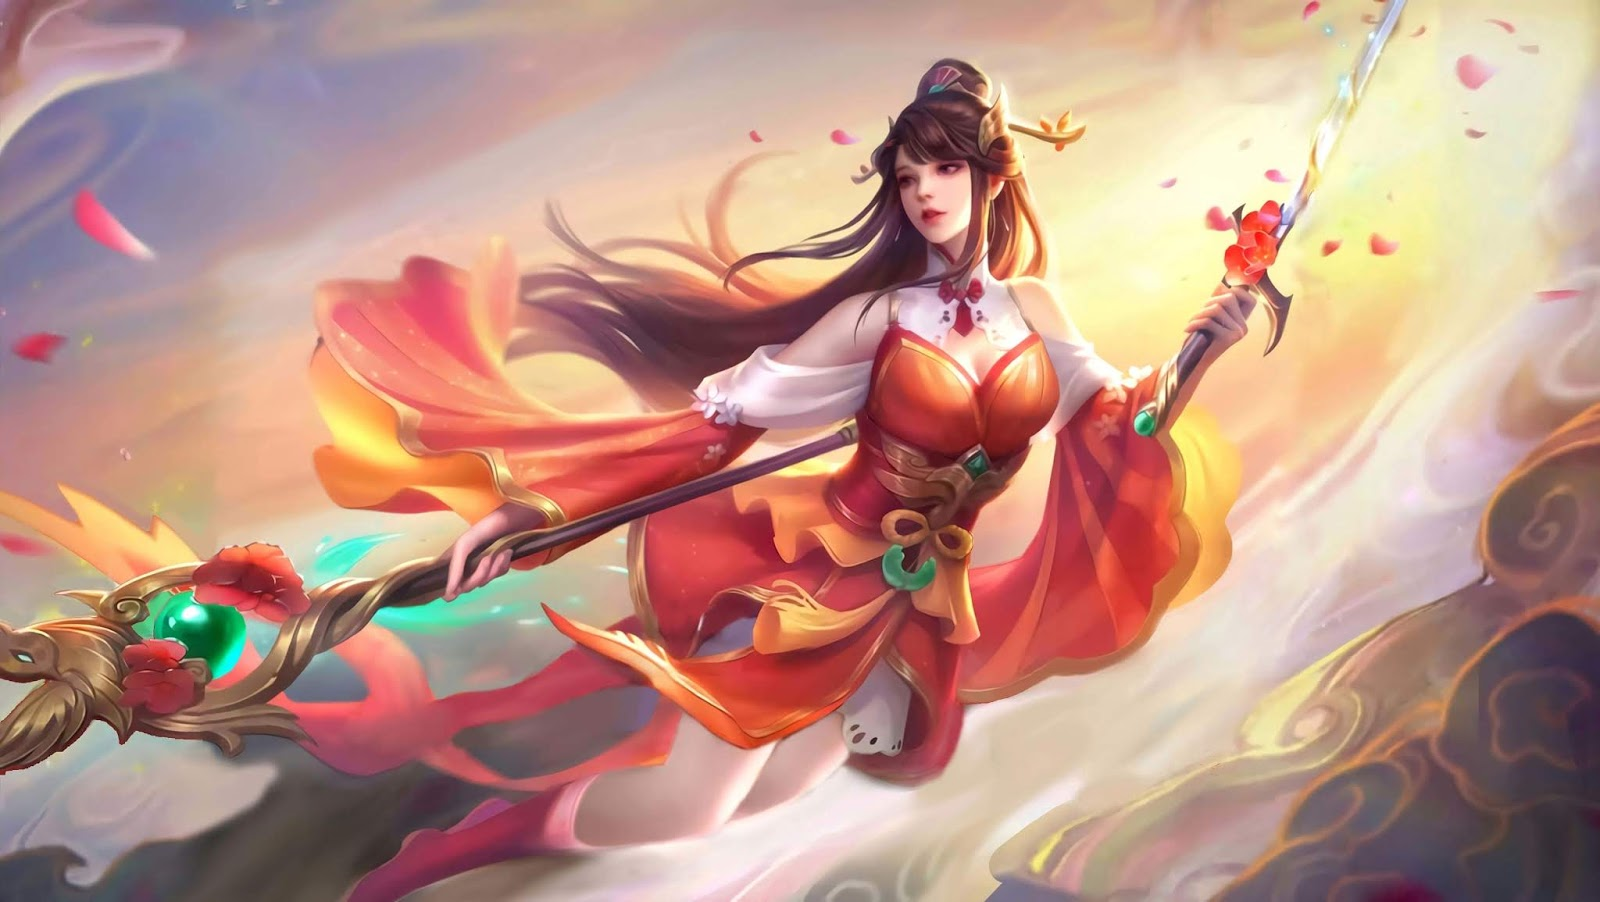 Wallpaper Odette Auspicious Charm Skin Mobile Legends full HD for PC